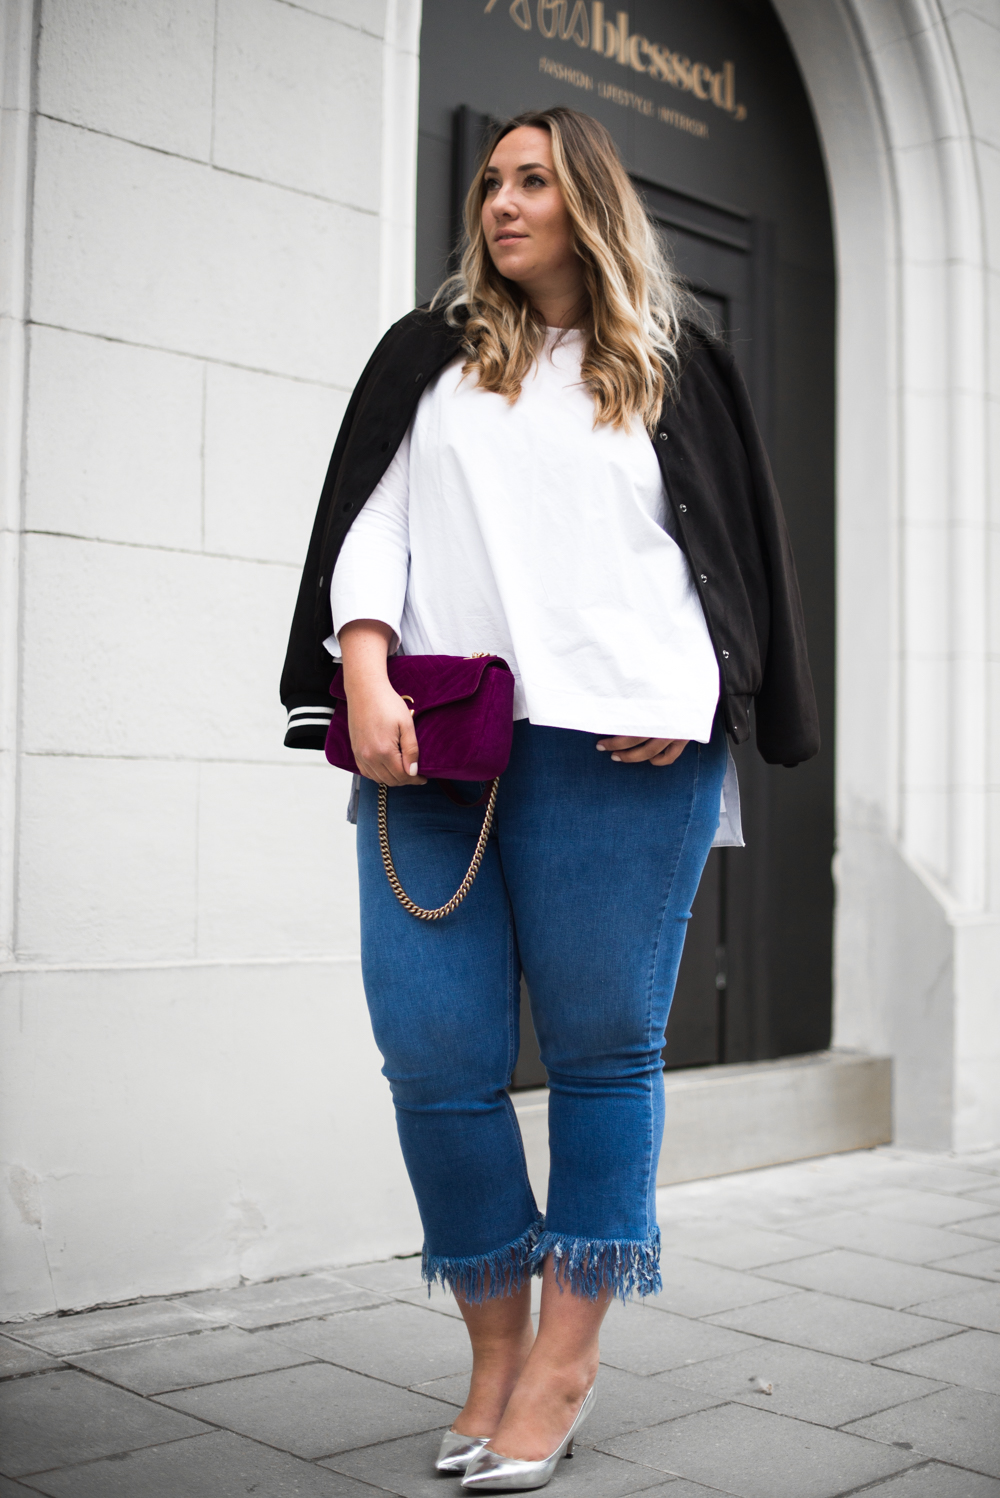 Gucci_The Skinny and the Curvy One_Ms wunderbar_Plus Size Blogger_curve blog_Fashionblog Deutschland_Plus Size Fashion Deutschland_College Jacke_Fringe Jeans (8 von 15)